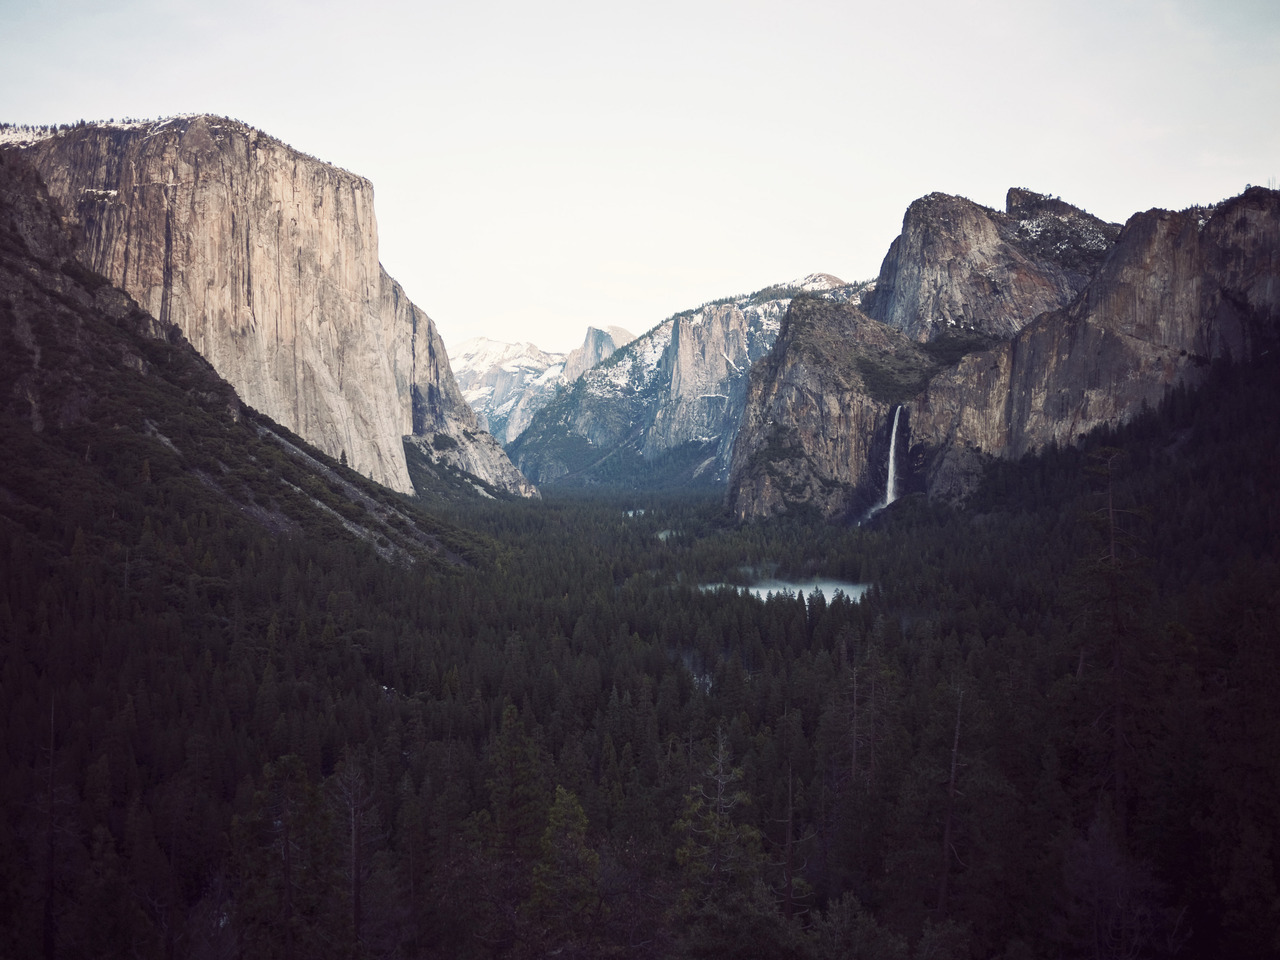 Yosemite National Park. Photo: Laura Austin